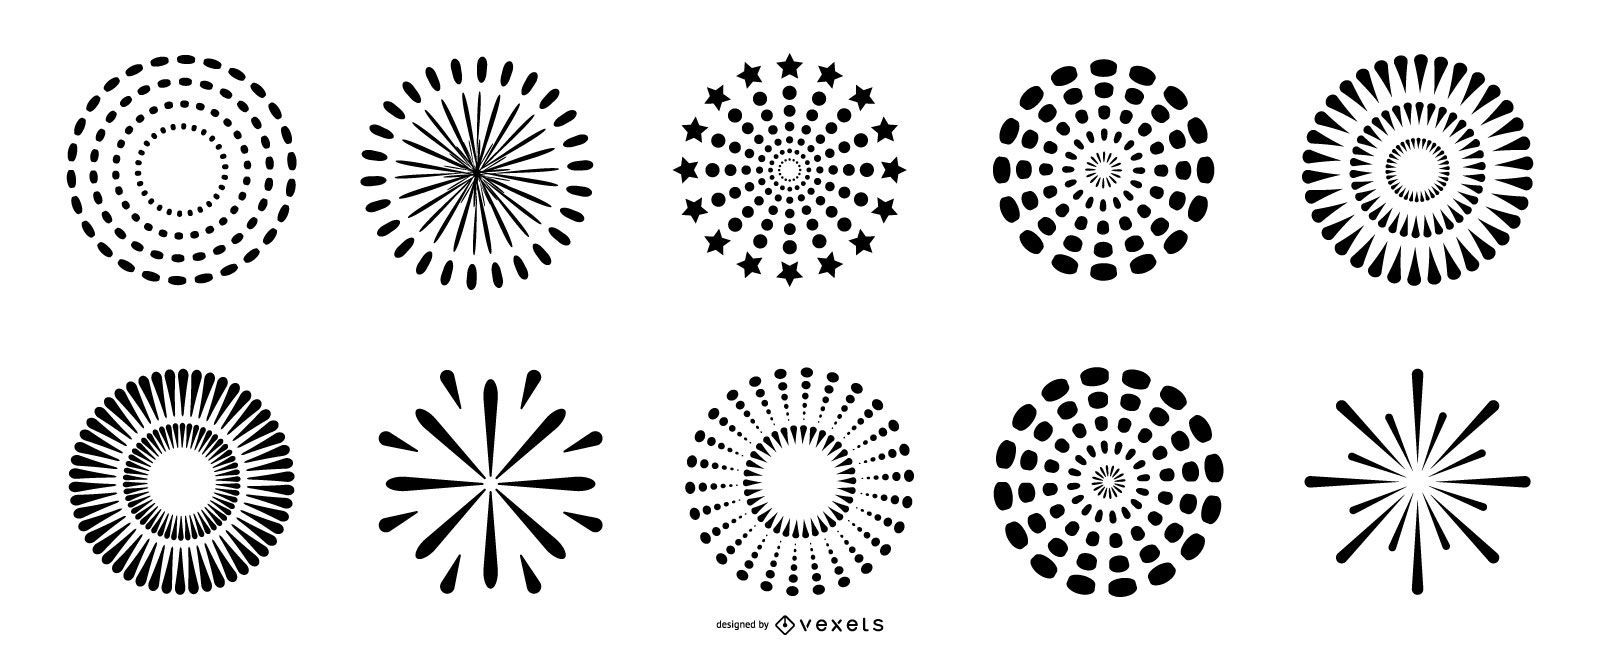 Fireworks silhouette collection